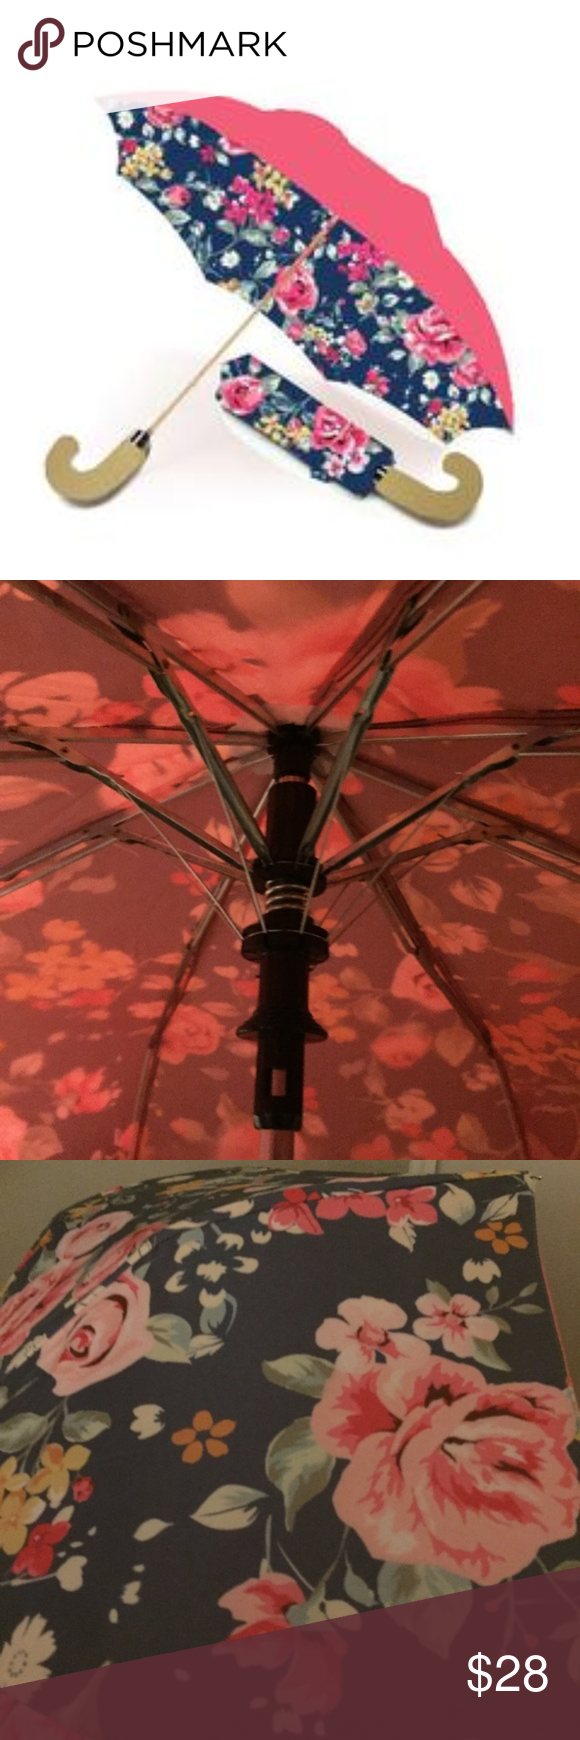 NWT! Cute Umbrella NWT! Cute Umbrella Accessories Umbrellas #cuteumbrellas NWT! Cute Umbrella NWT! Cute Umbrella Accessories Umbrellas #cuteumbrellas NWT! Cute Umbrella NWT! Cute Umbrella Accessories Umbrellas #cuteumbrellas NWT! Cute Umbrella NWT! Cute Umbrella Accessories Umbrellas #cuteumbrellas